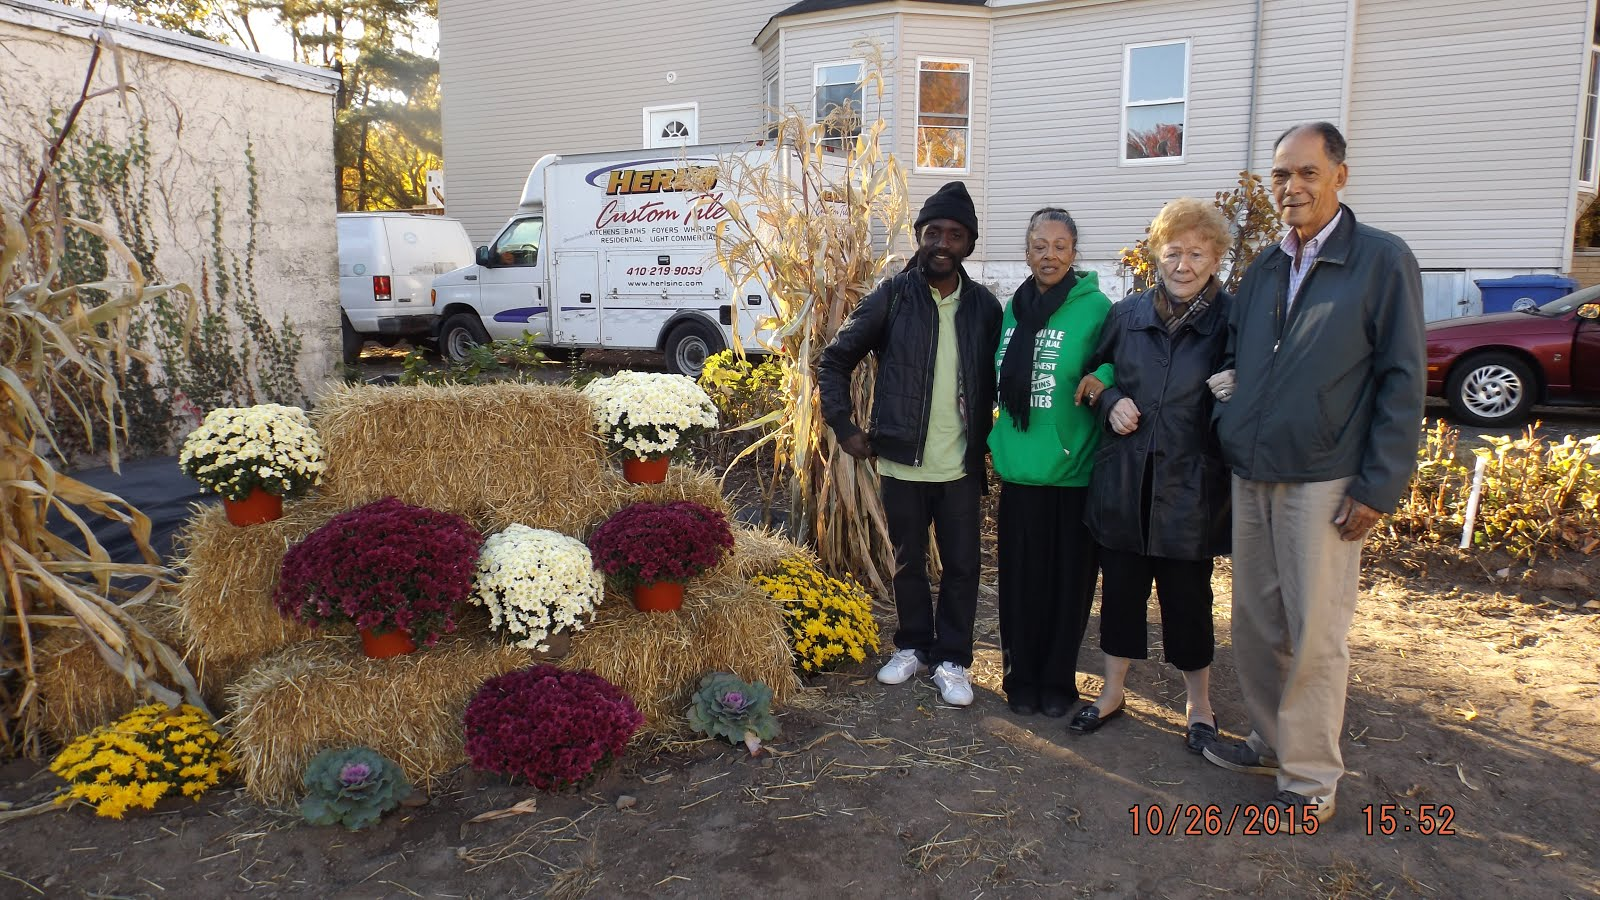 Fall Harvest Festival October 2015 - Winston Evans, Crystal Brown, Fran Whelan, Arnold Brown